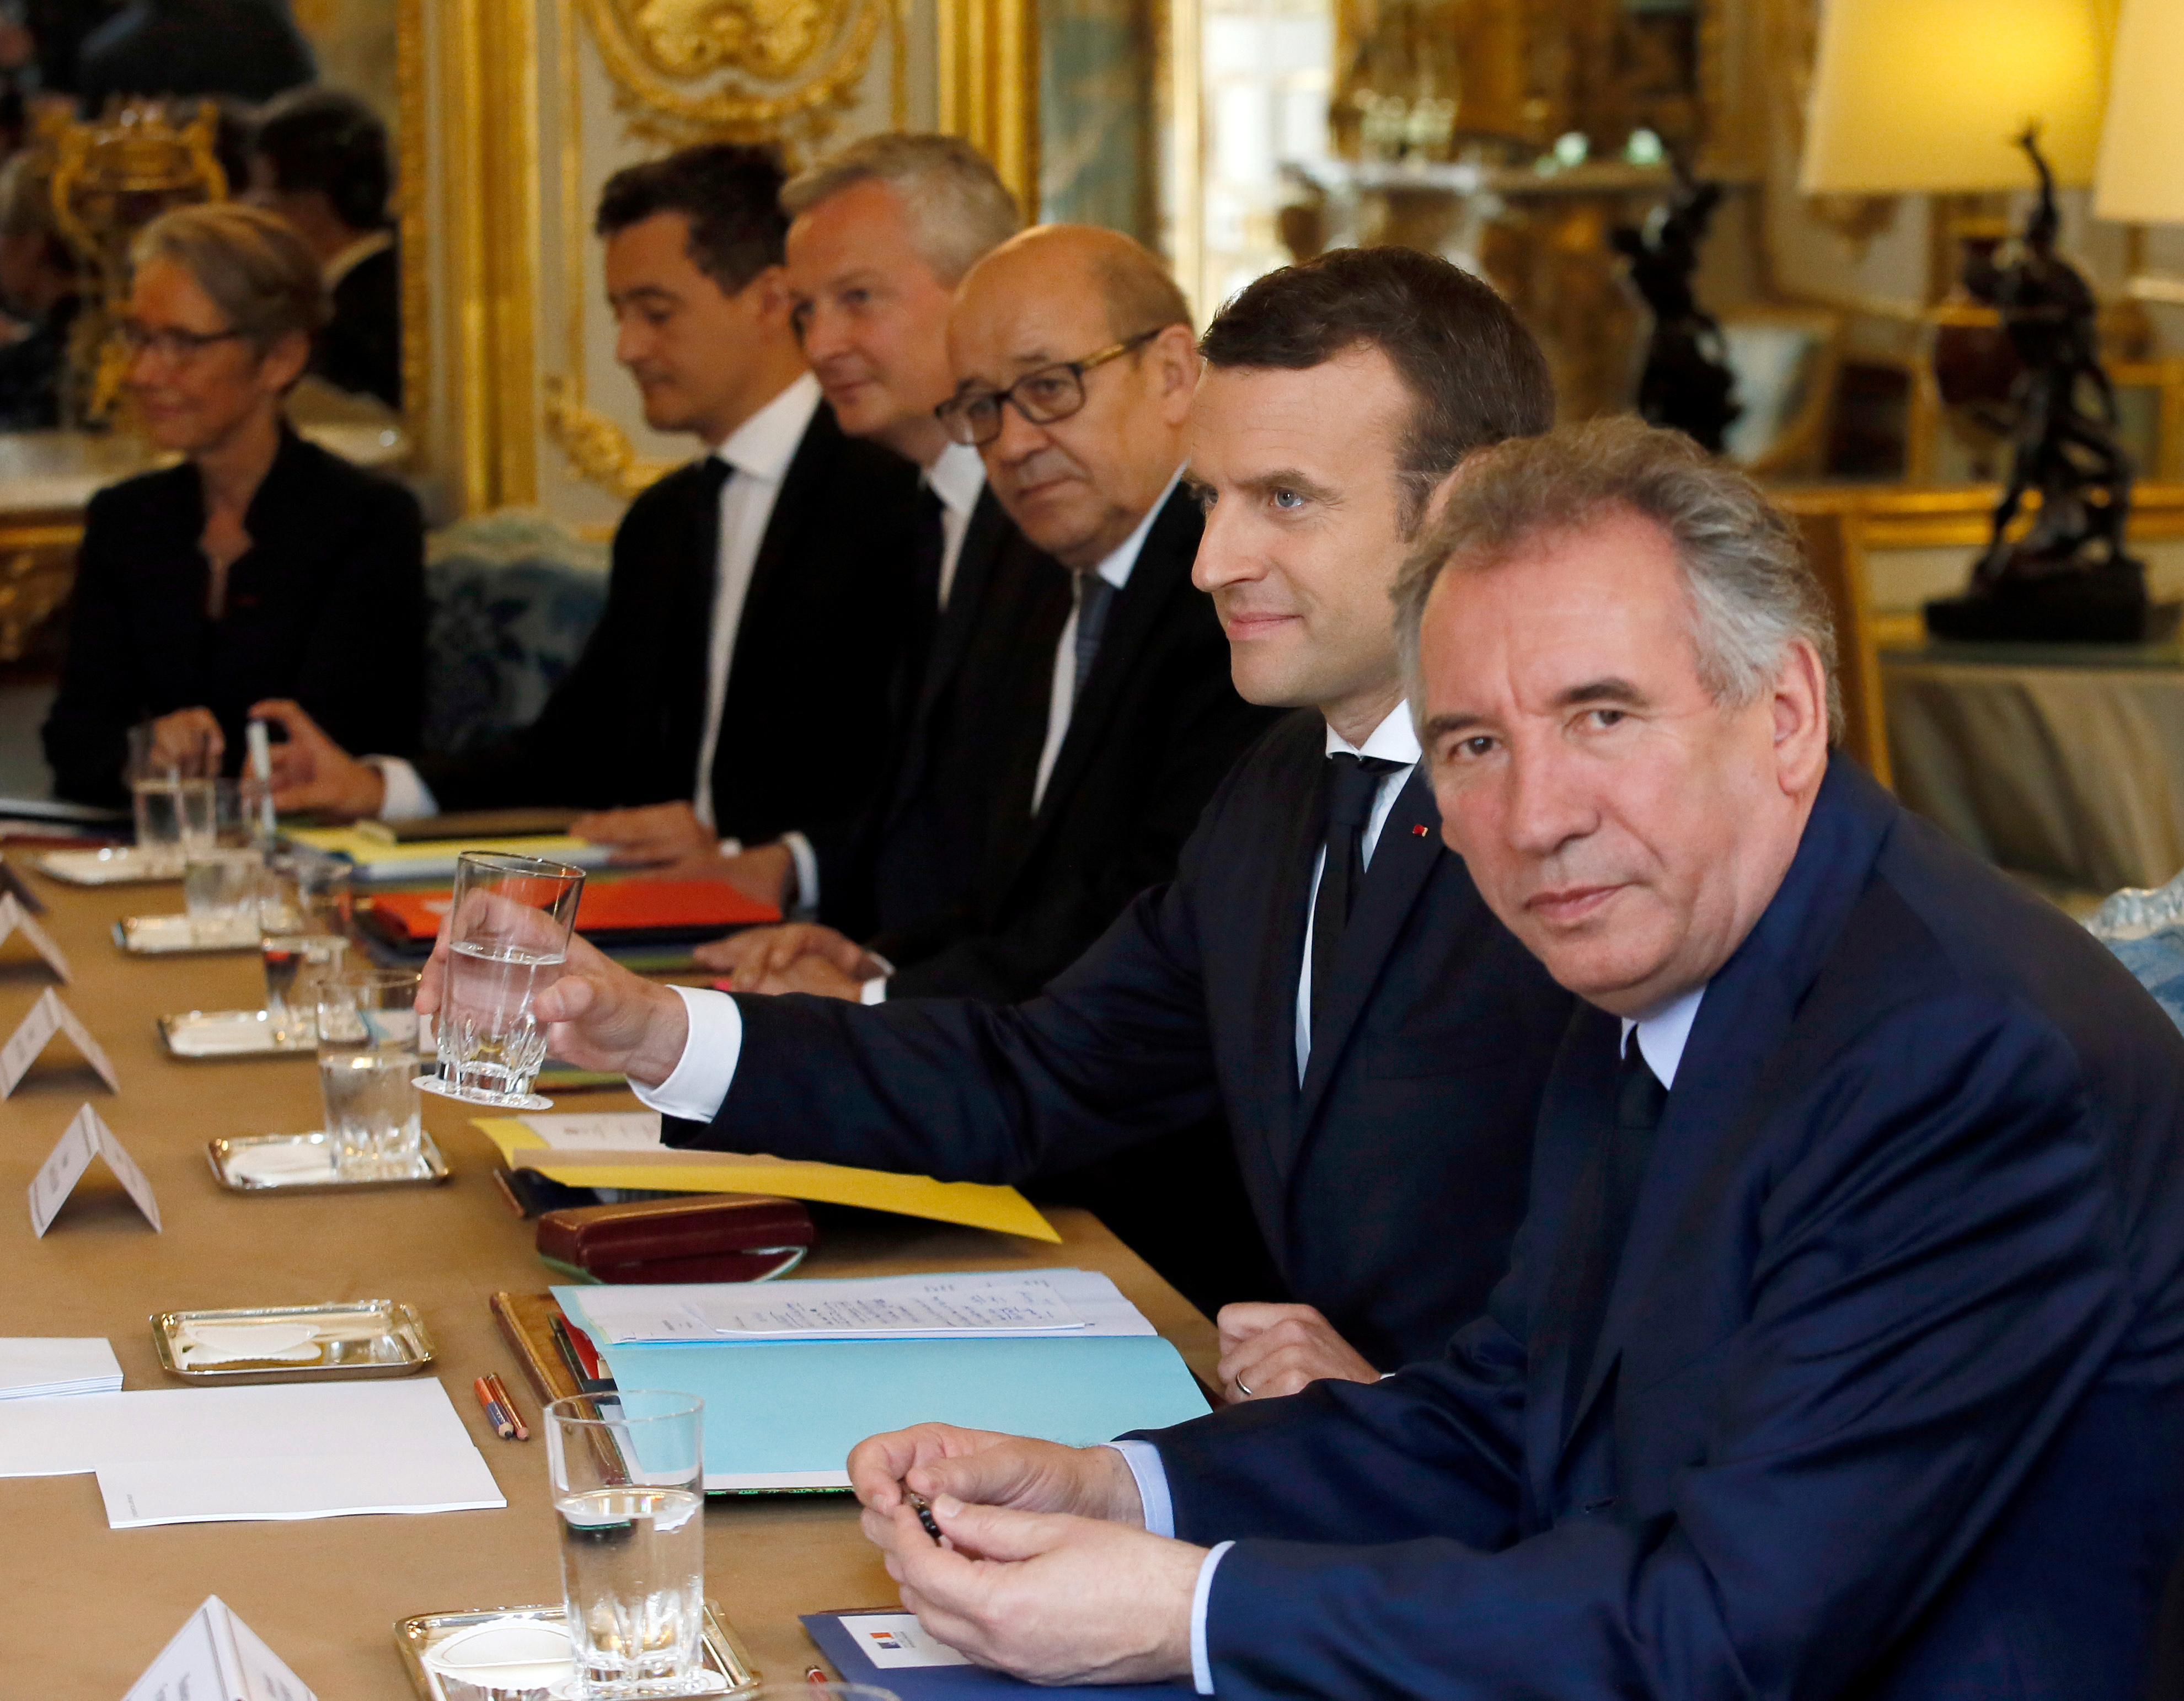 French President Emmanuel Macron (2ndR), attends the first cabinet meeting with Justice Minister Francois Bayrou (R), European and Foreign Minister Jean-Yves Le Drian (C), Economy Minister Bruno Le Maire and Public Accounts Minister Gerald Darmanin at the Elysee Palace in Paris, France, May 18, 2017. REUTERS/Francois Mori/Pool